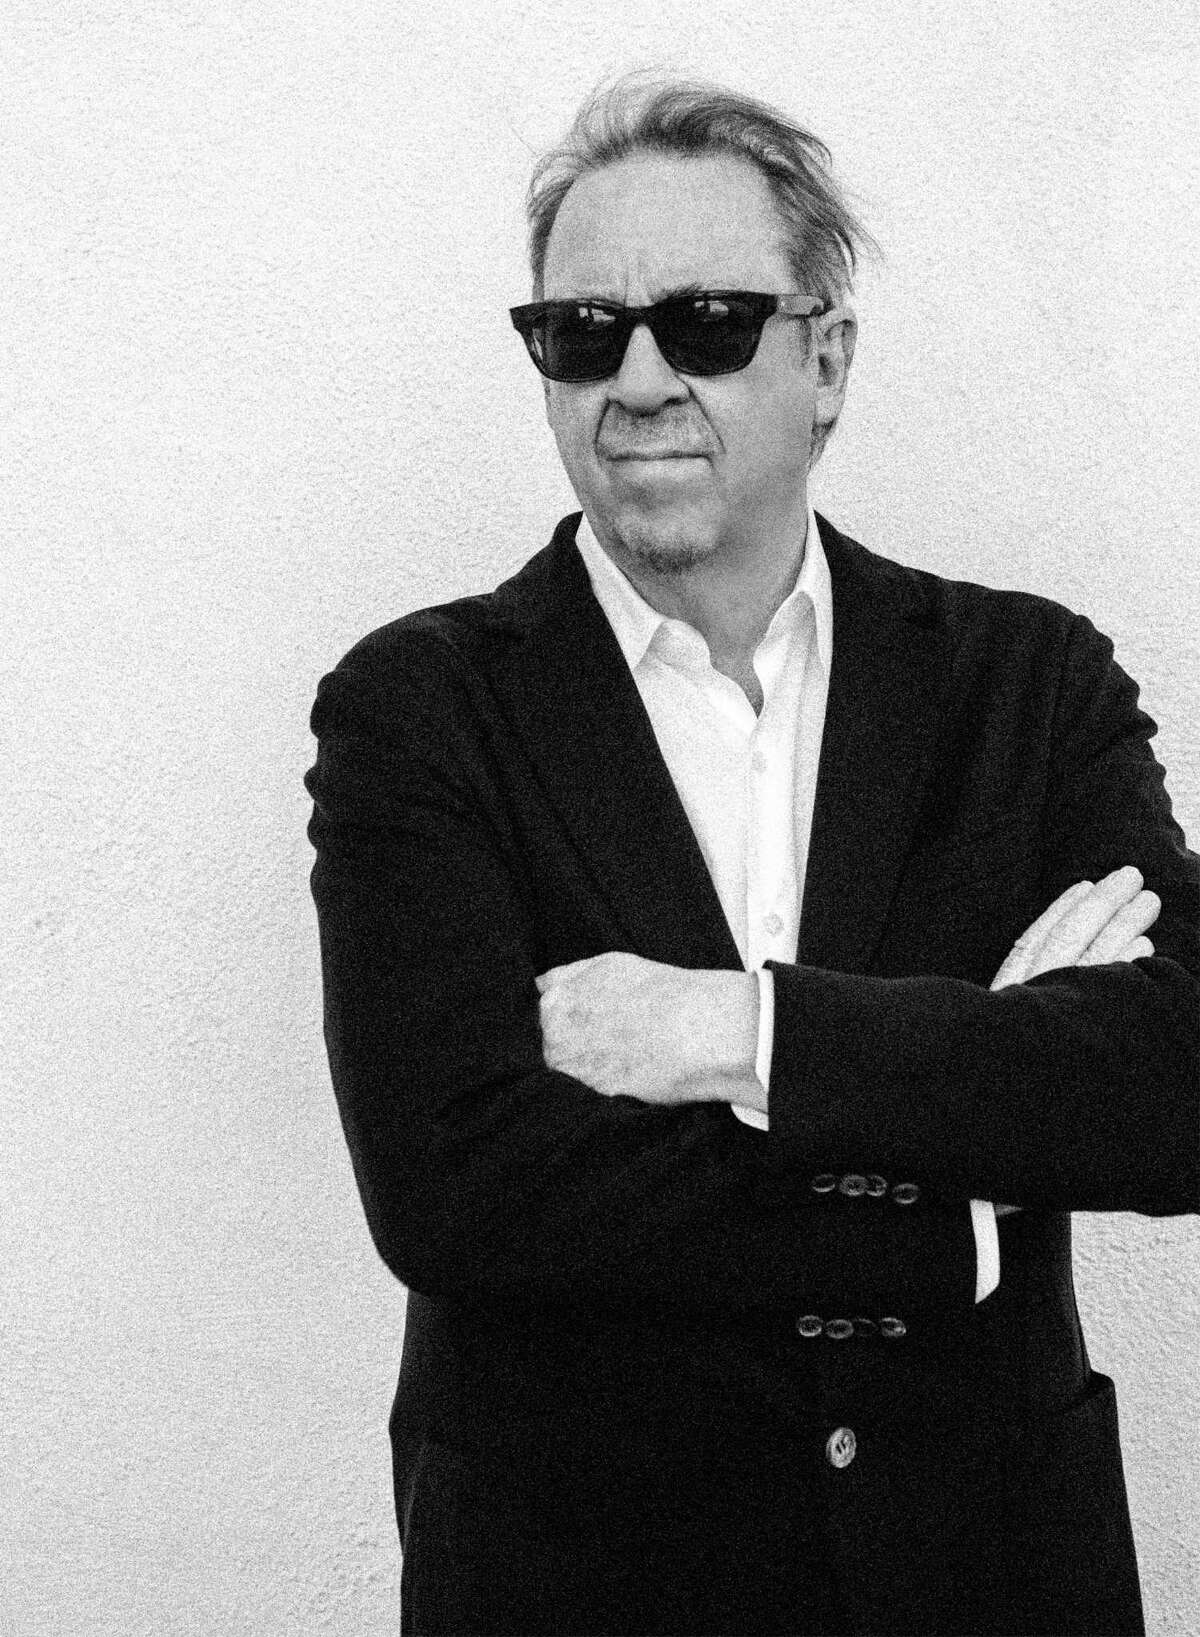 The Warner Theatre will welcome singer, songwriter and guitarist Boz Scaggs to the Main Stage on Thursday, June 28 at 8 p.m.